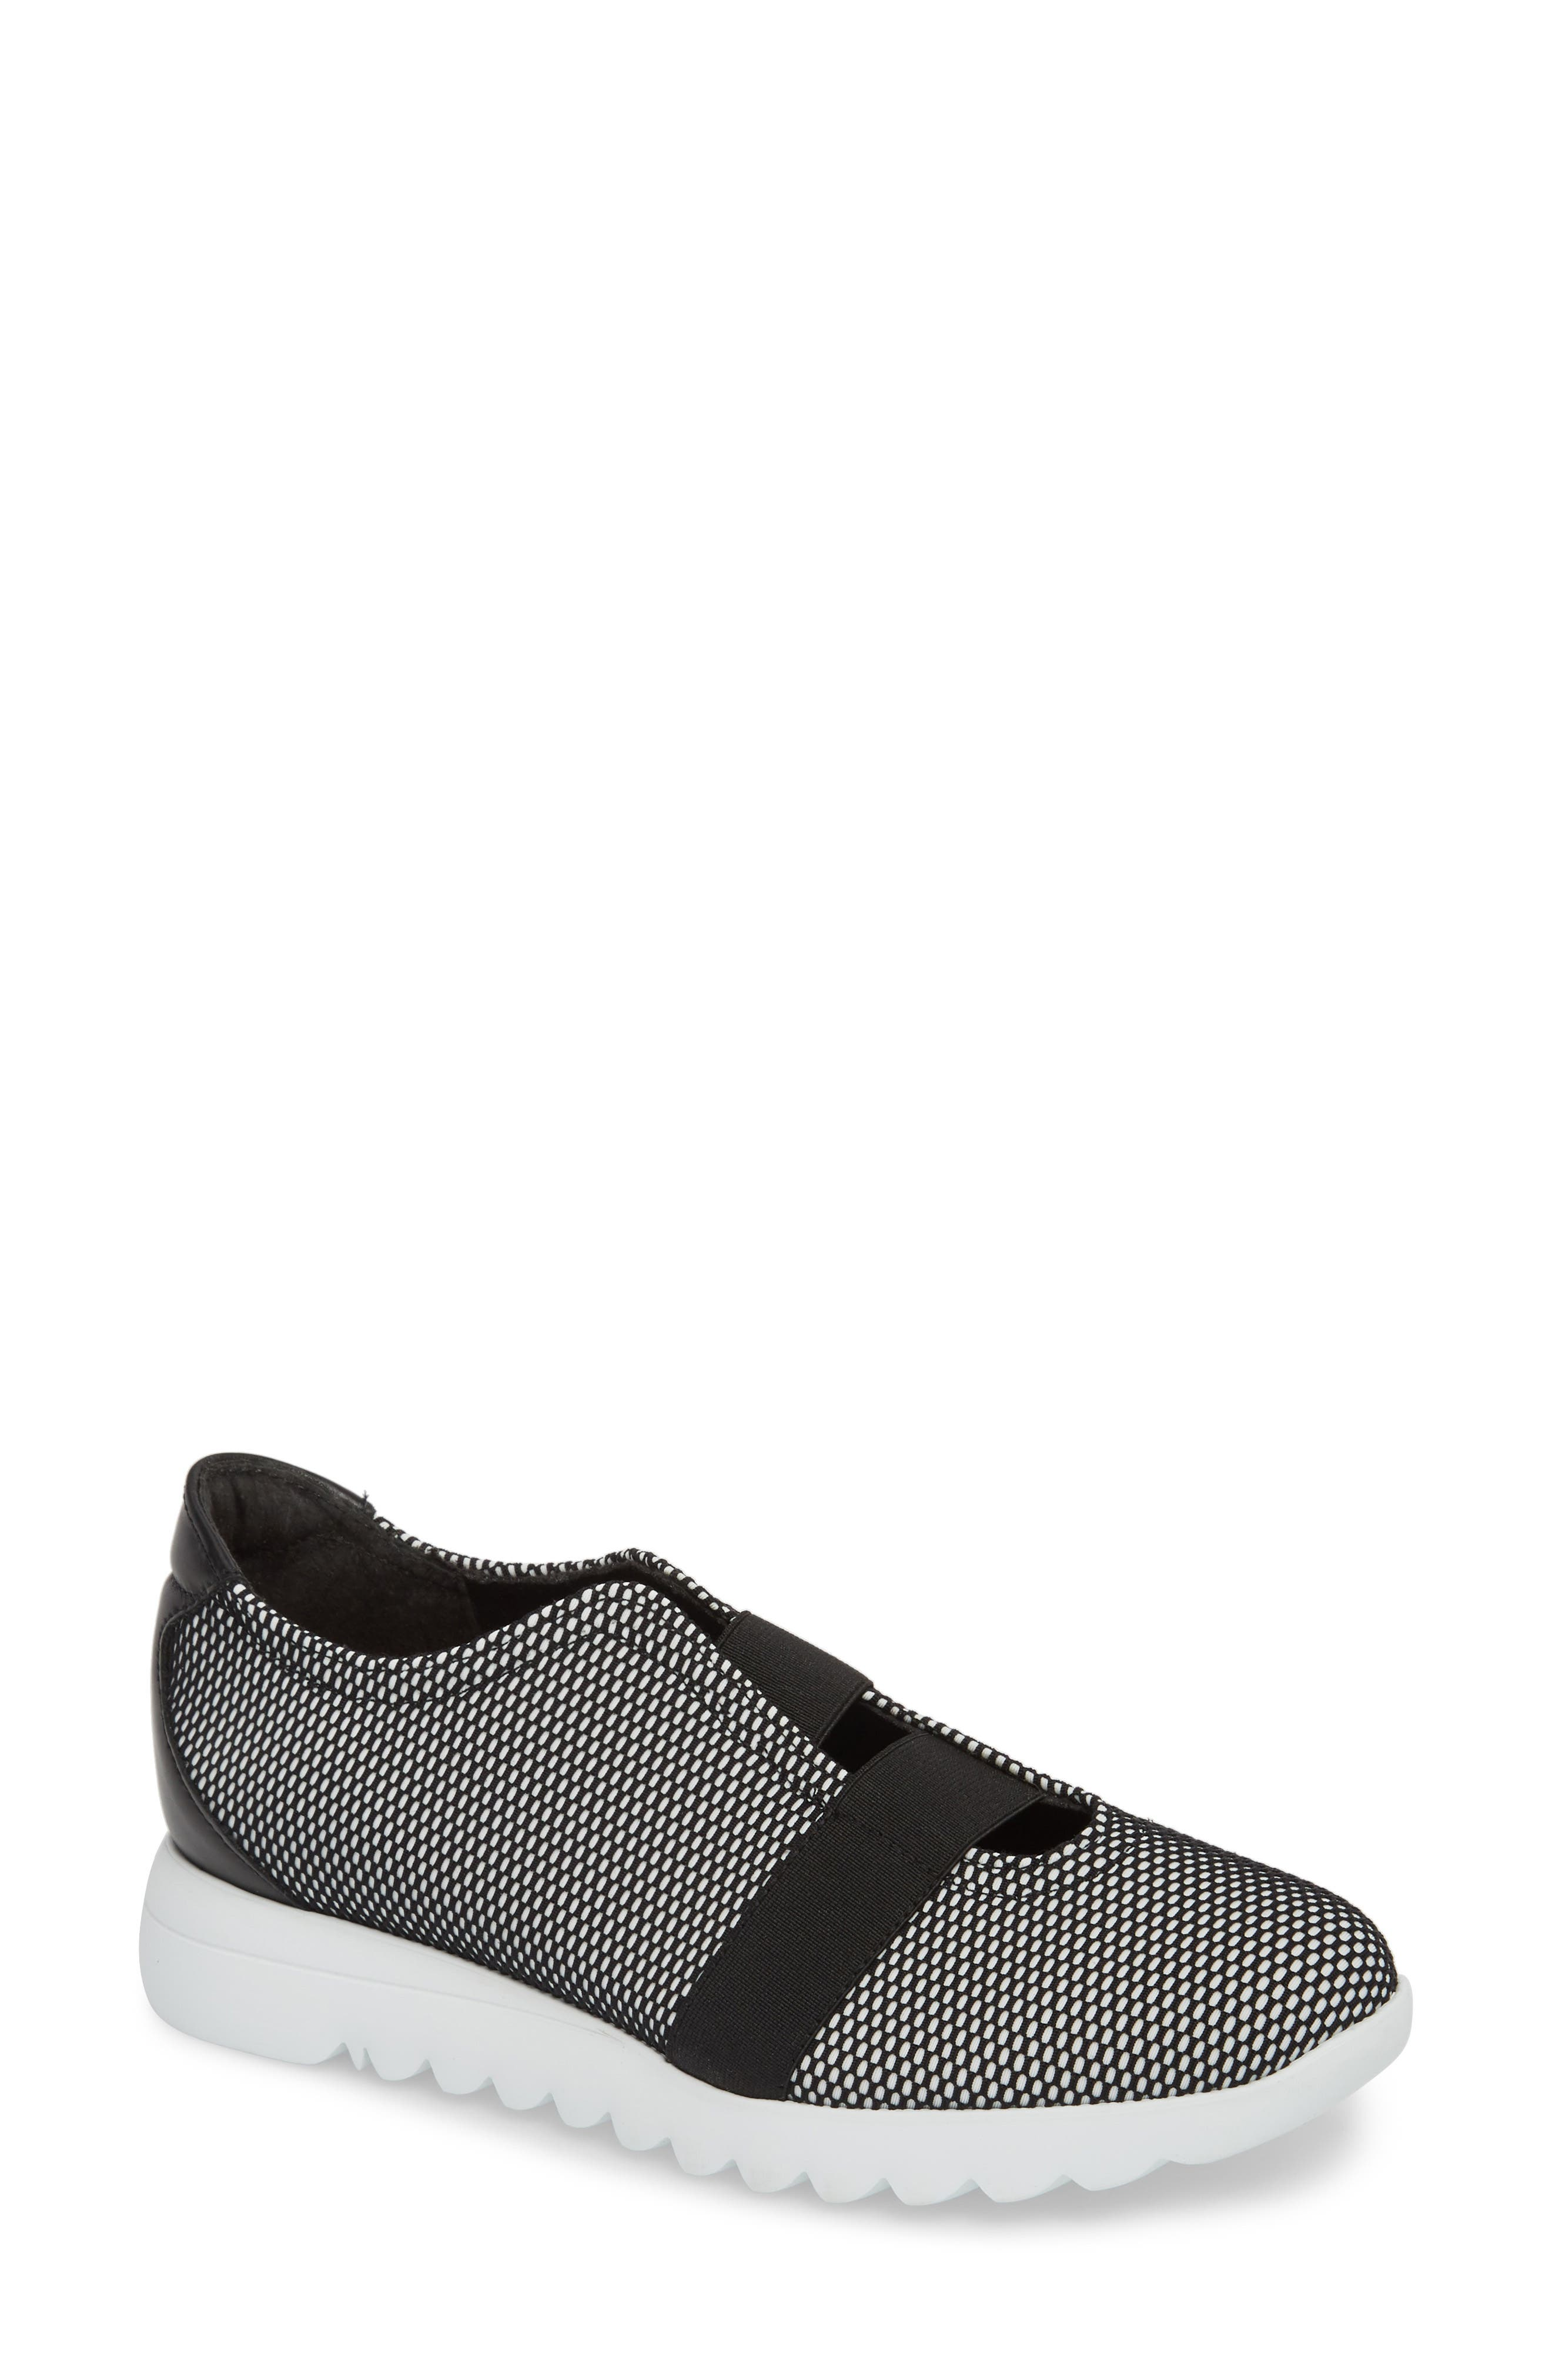 Alta Slip-On Sneaker, Main, color, BLACK/ WHITE FABRIC